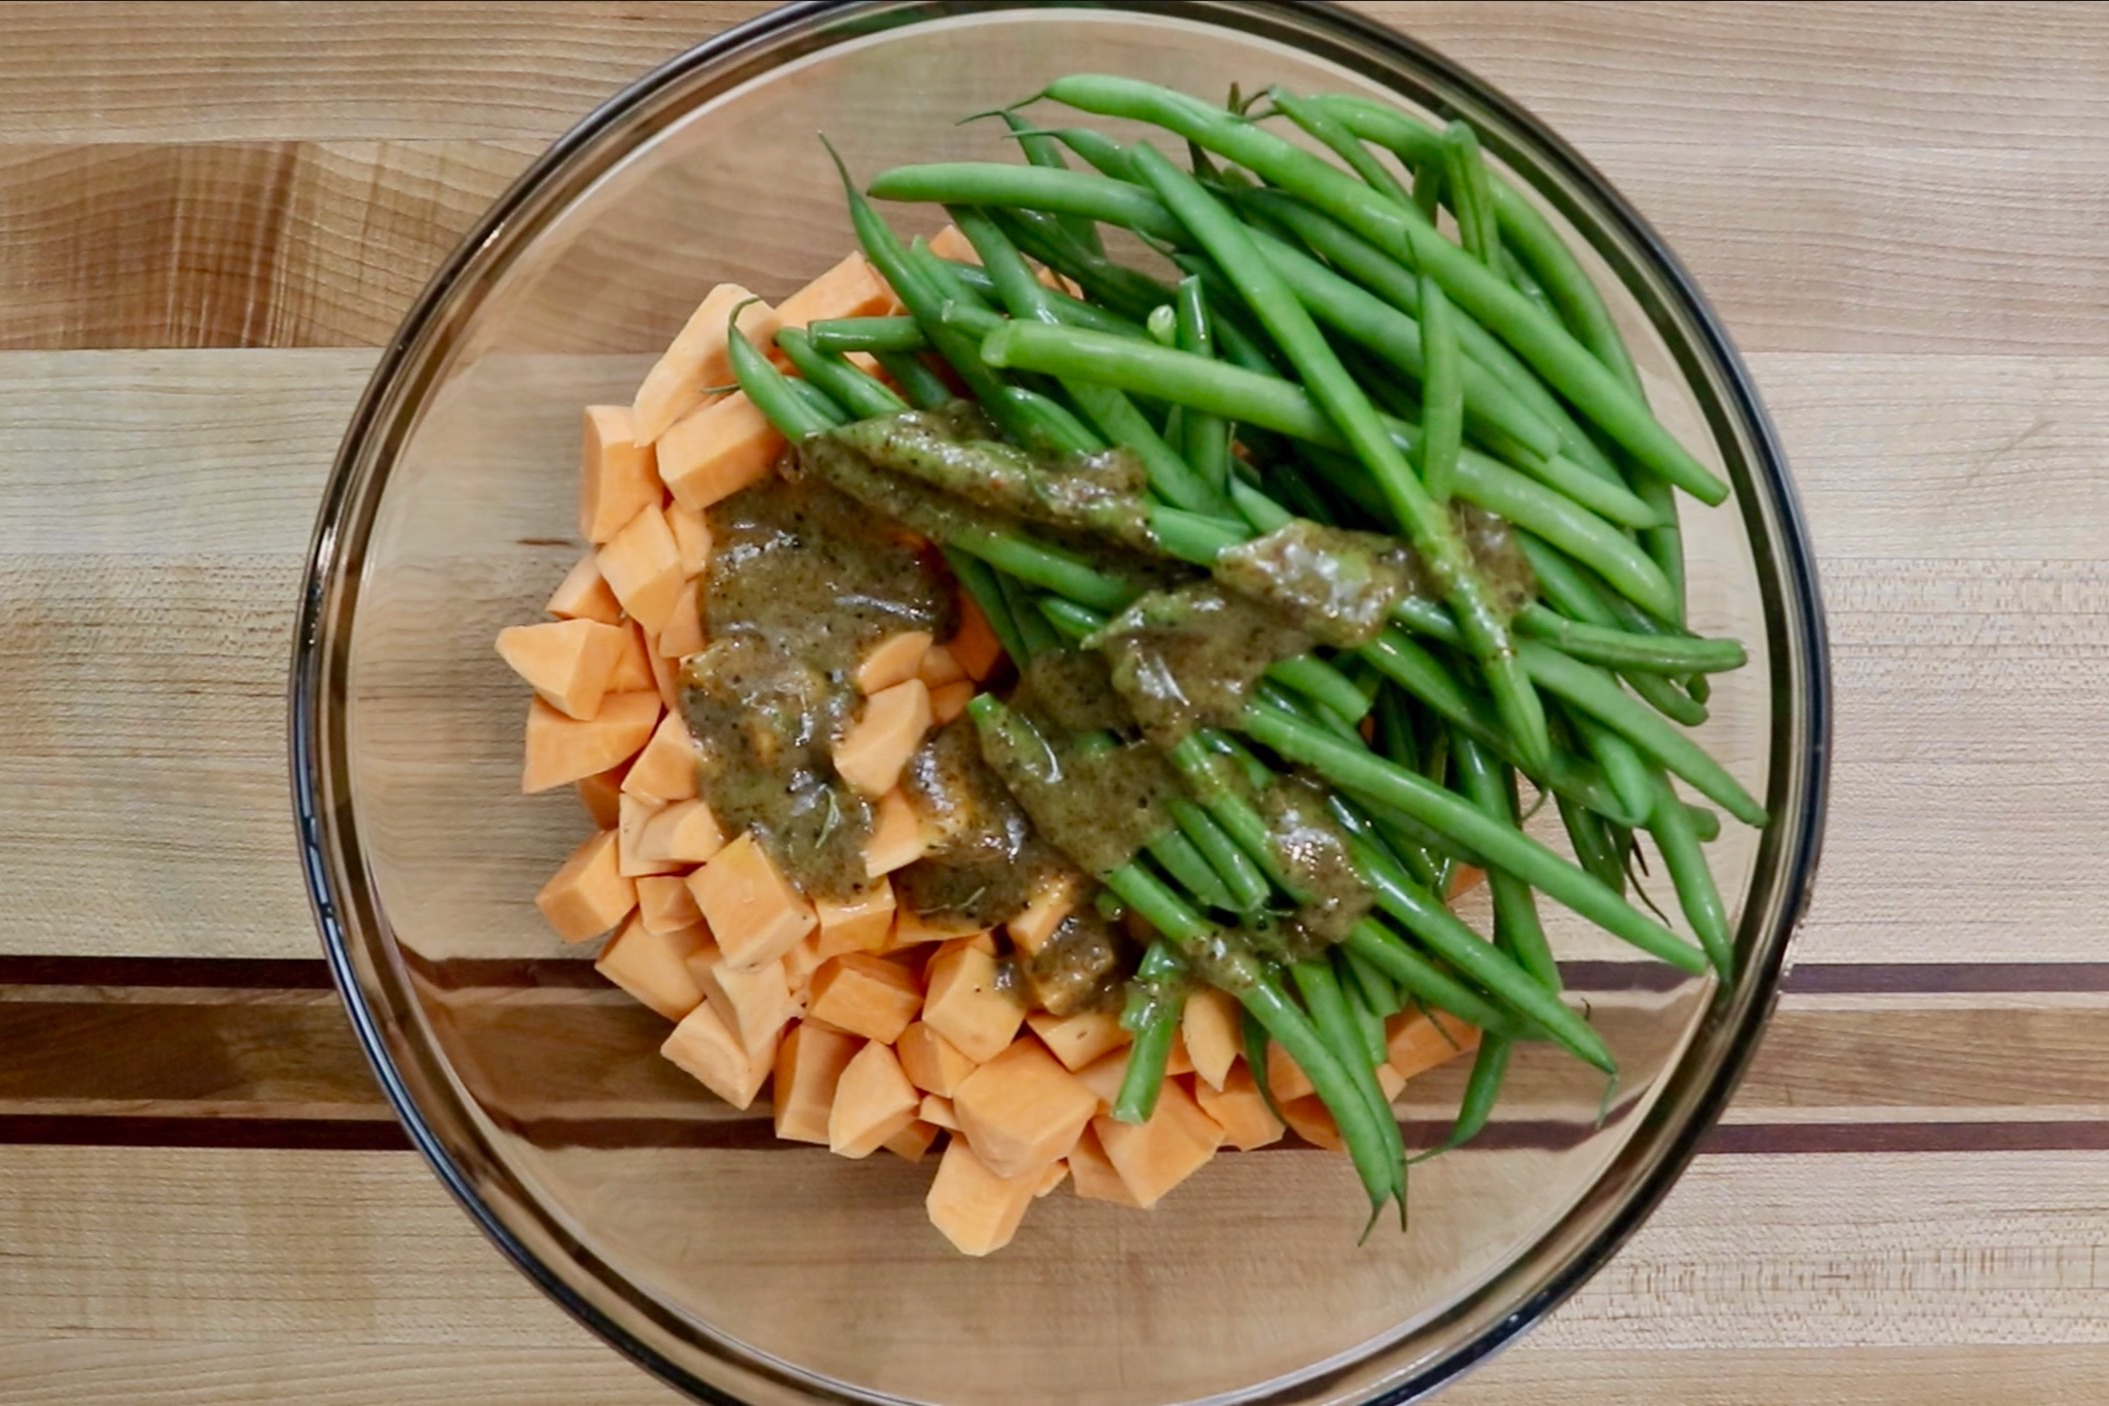 4. In a large bowl, add the sweet potatoes, green beans, olive oil and reserved marinade. Stir until all pieces are coated. -